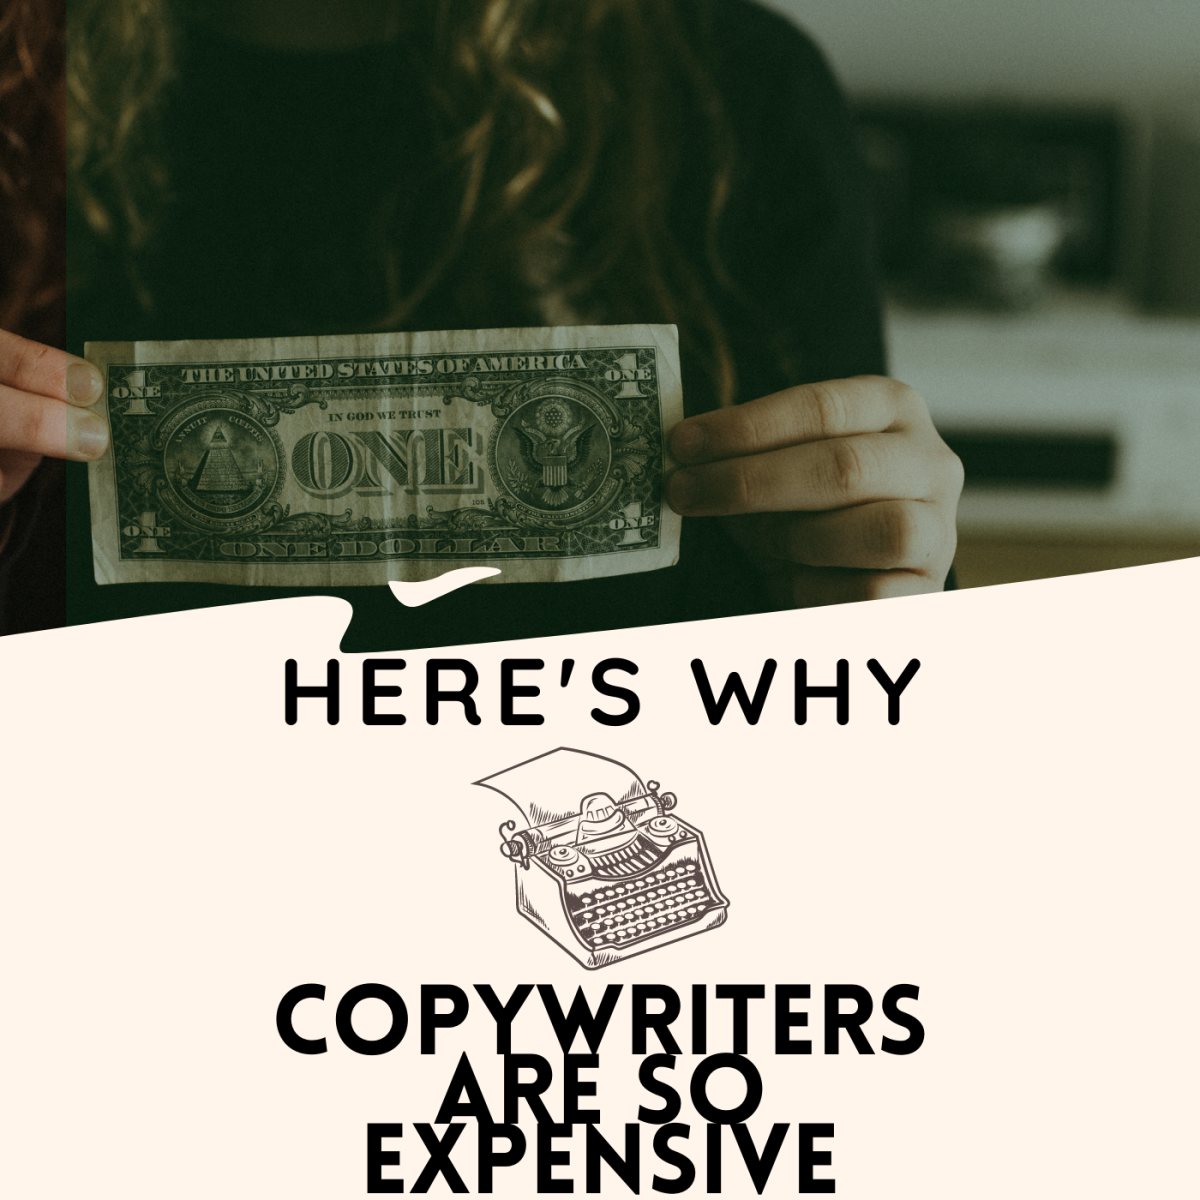 There's a reason why successful brands and businesses hire copywriters to compose the text on their websites, ads, social media posts and product descriptions.